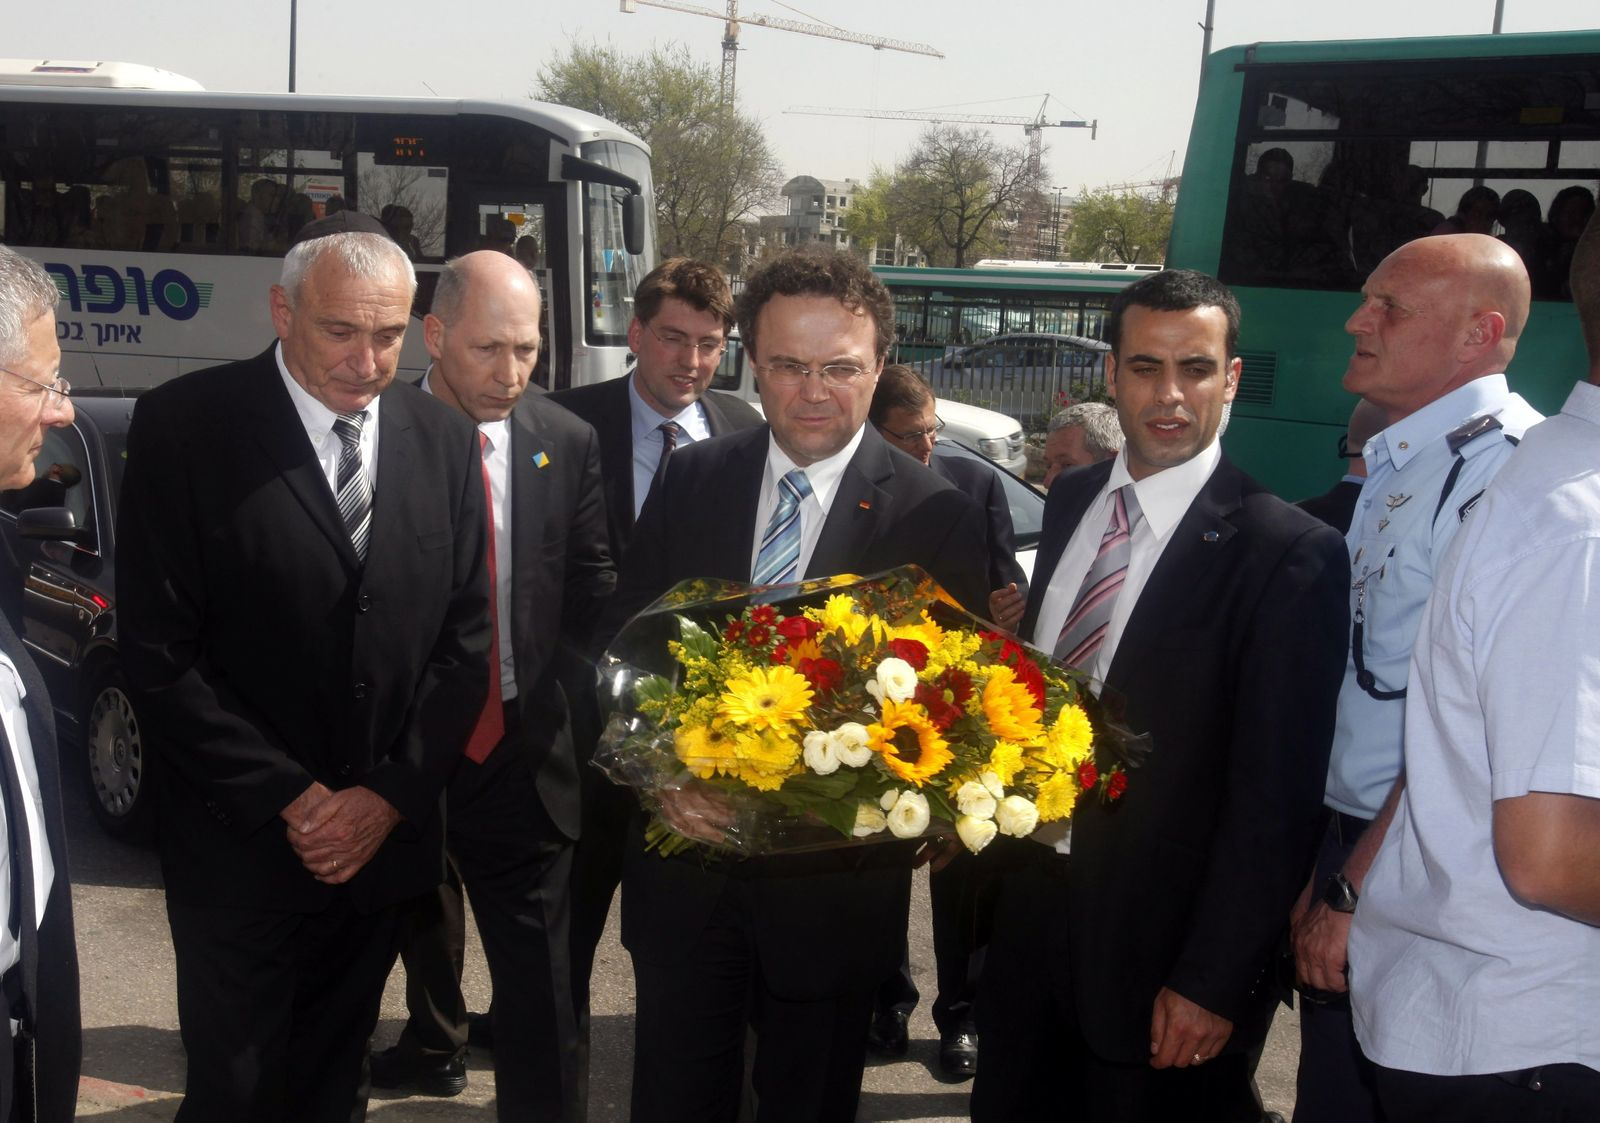 German Interior Minister lays wreath a bus bombing site in Jerusa